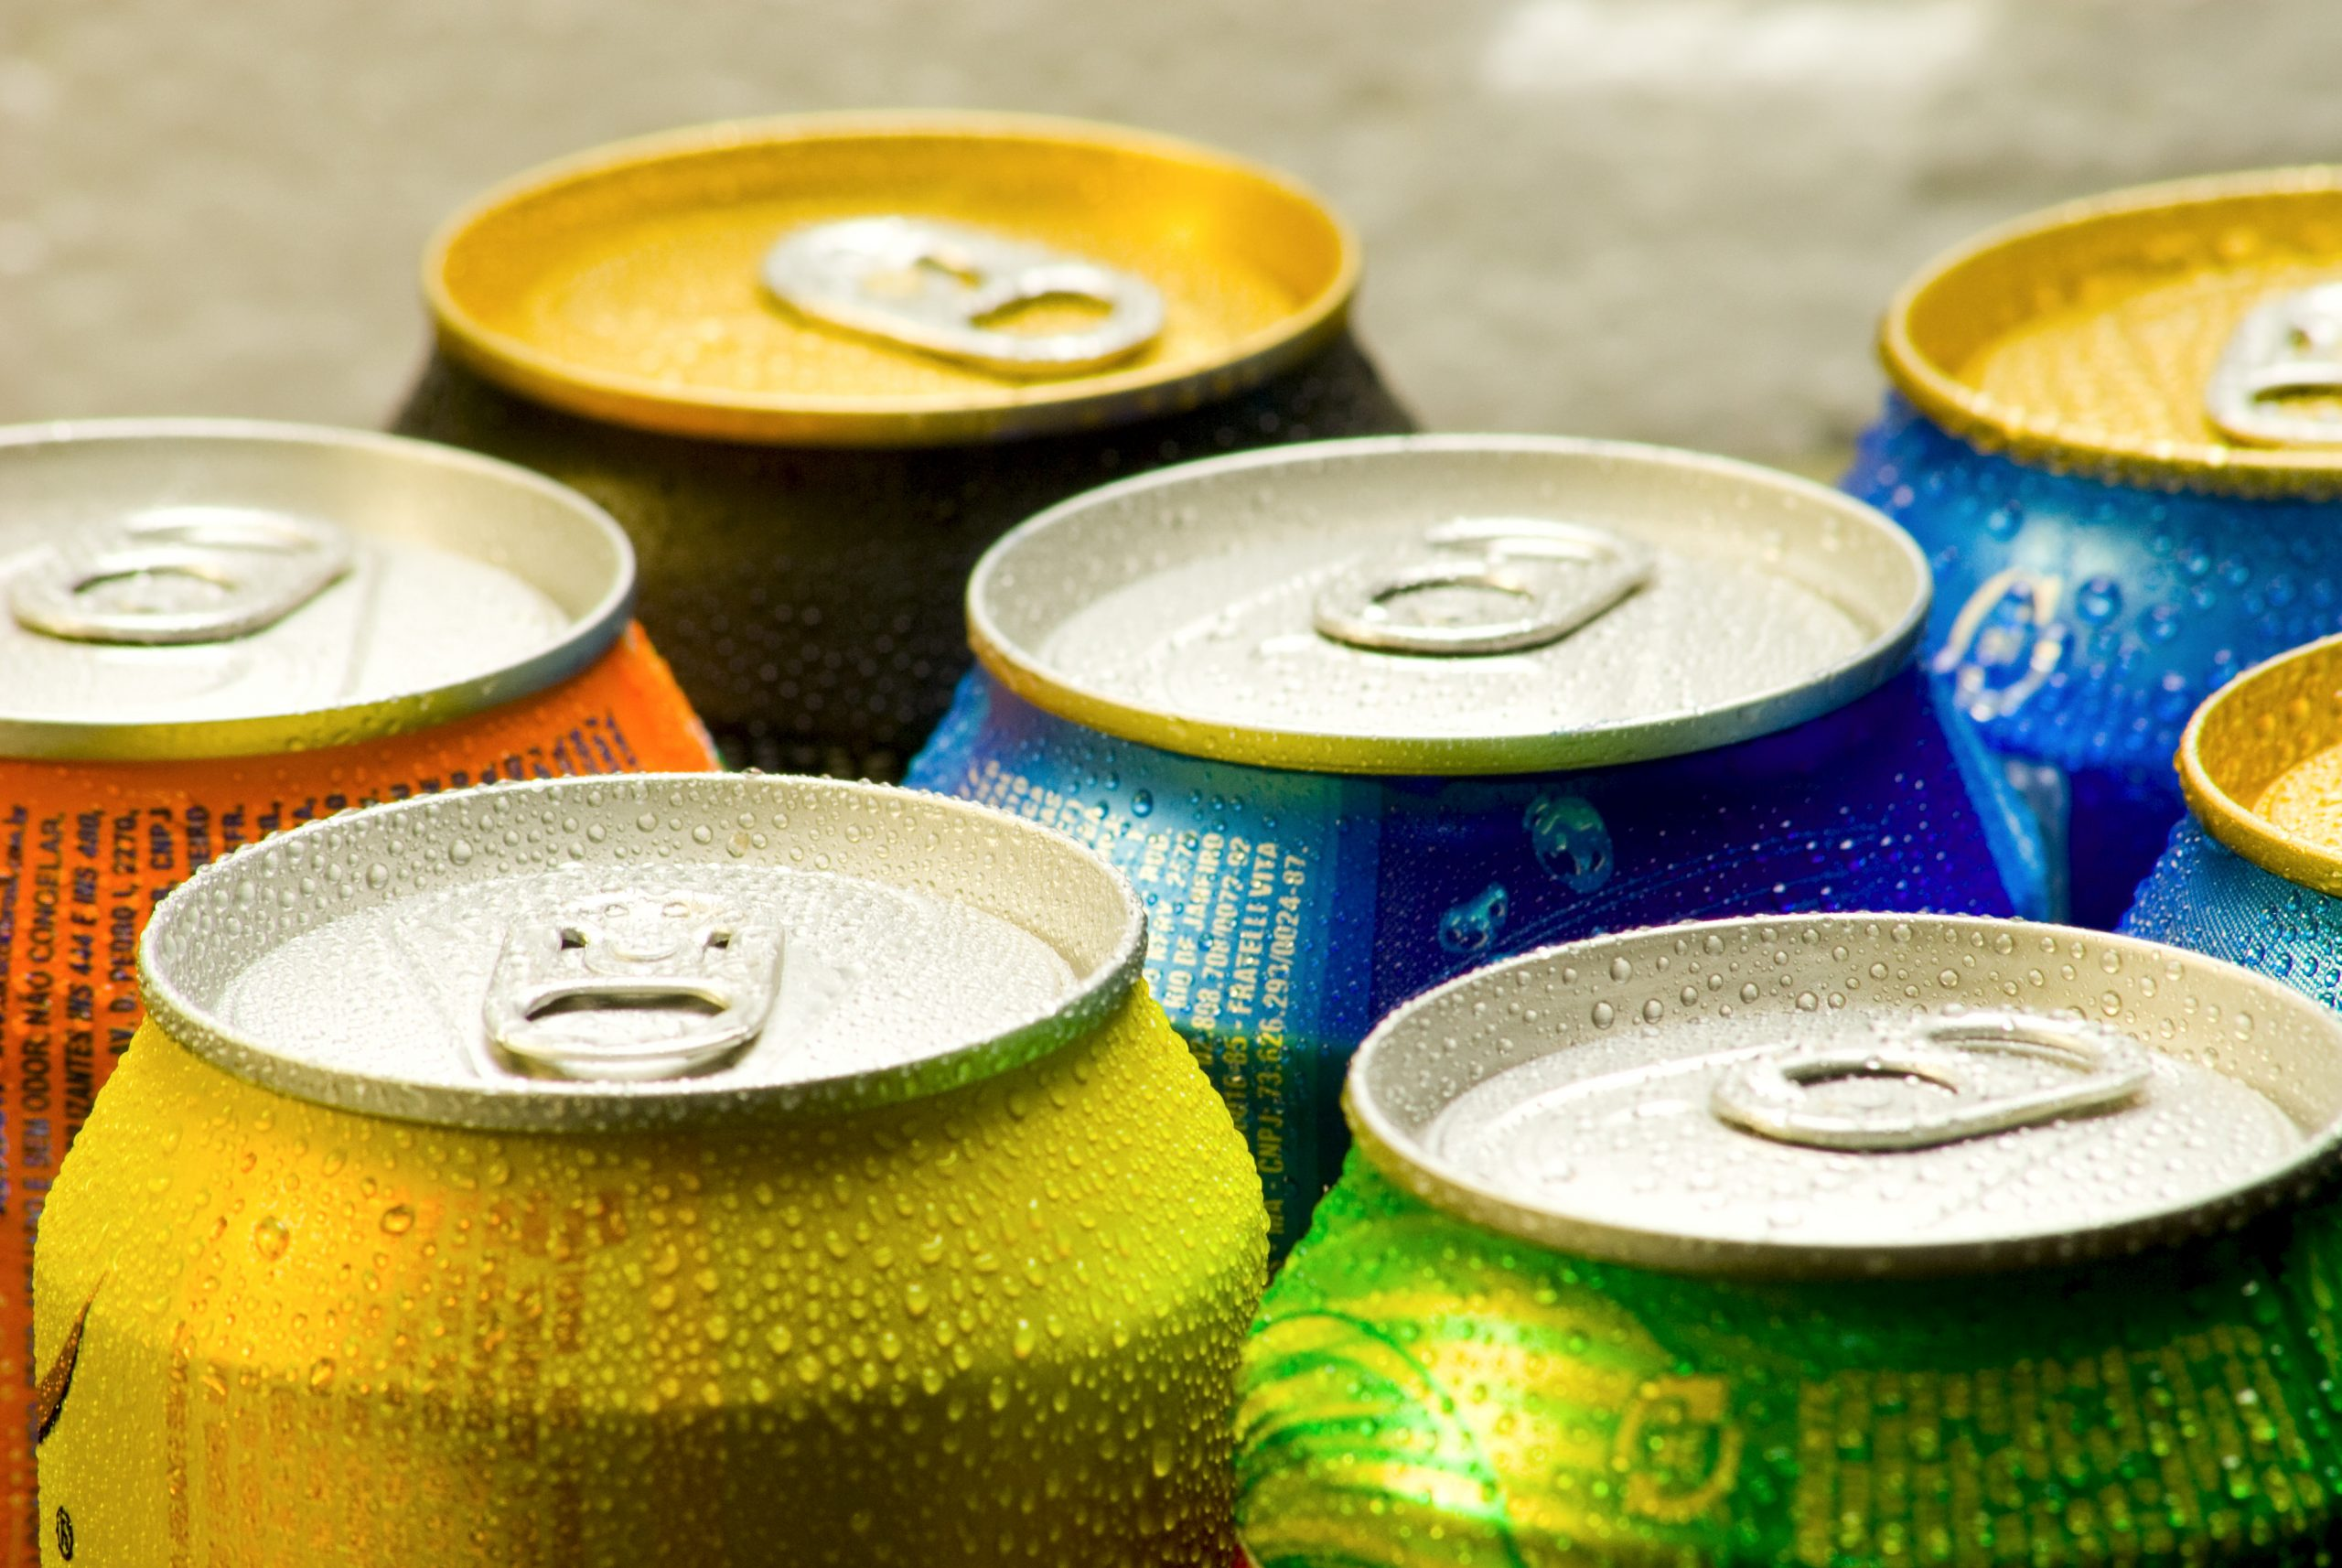 aluminium drinks cans: Ethically sourcing drinks cans could create job surge, ex-minister Lord Barker says